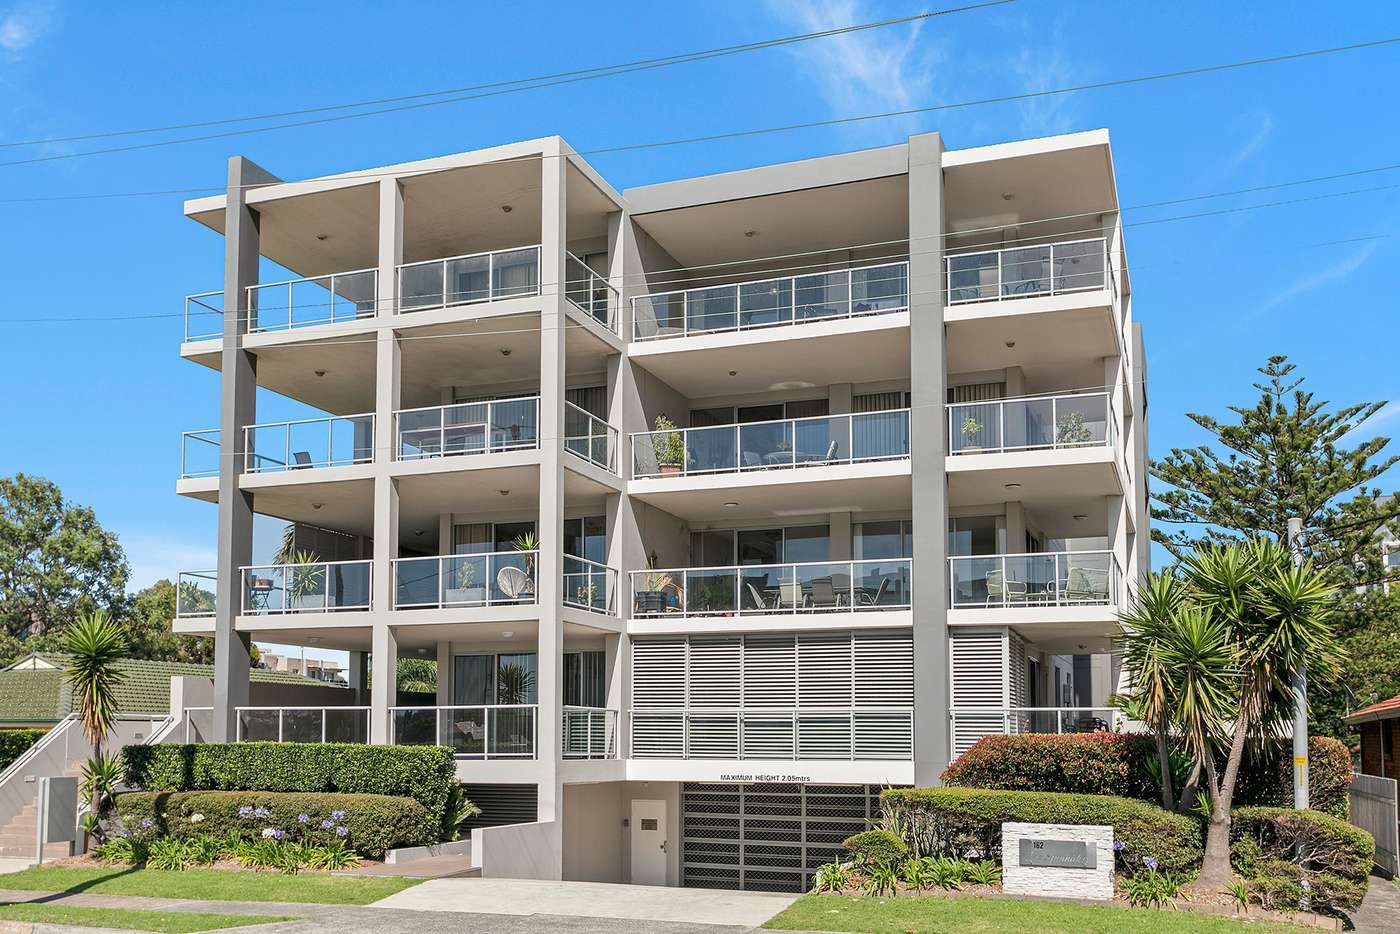 Main view of Homely apartment listing, 1/162 Corrimal Street, Wollongong NSW 2500